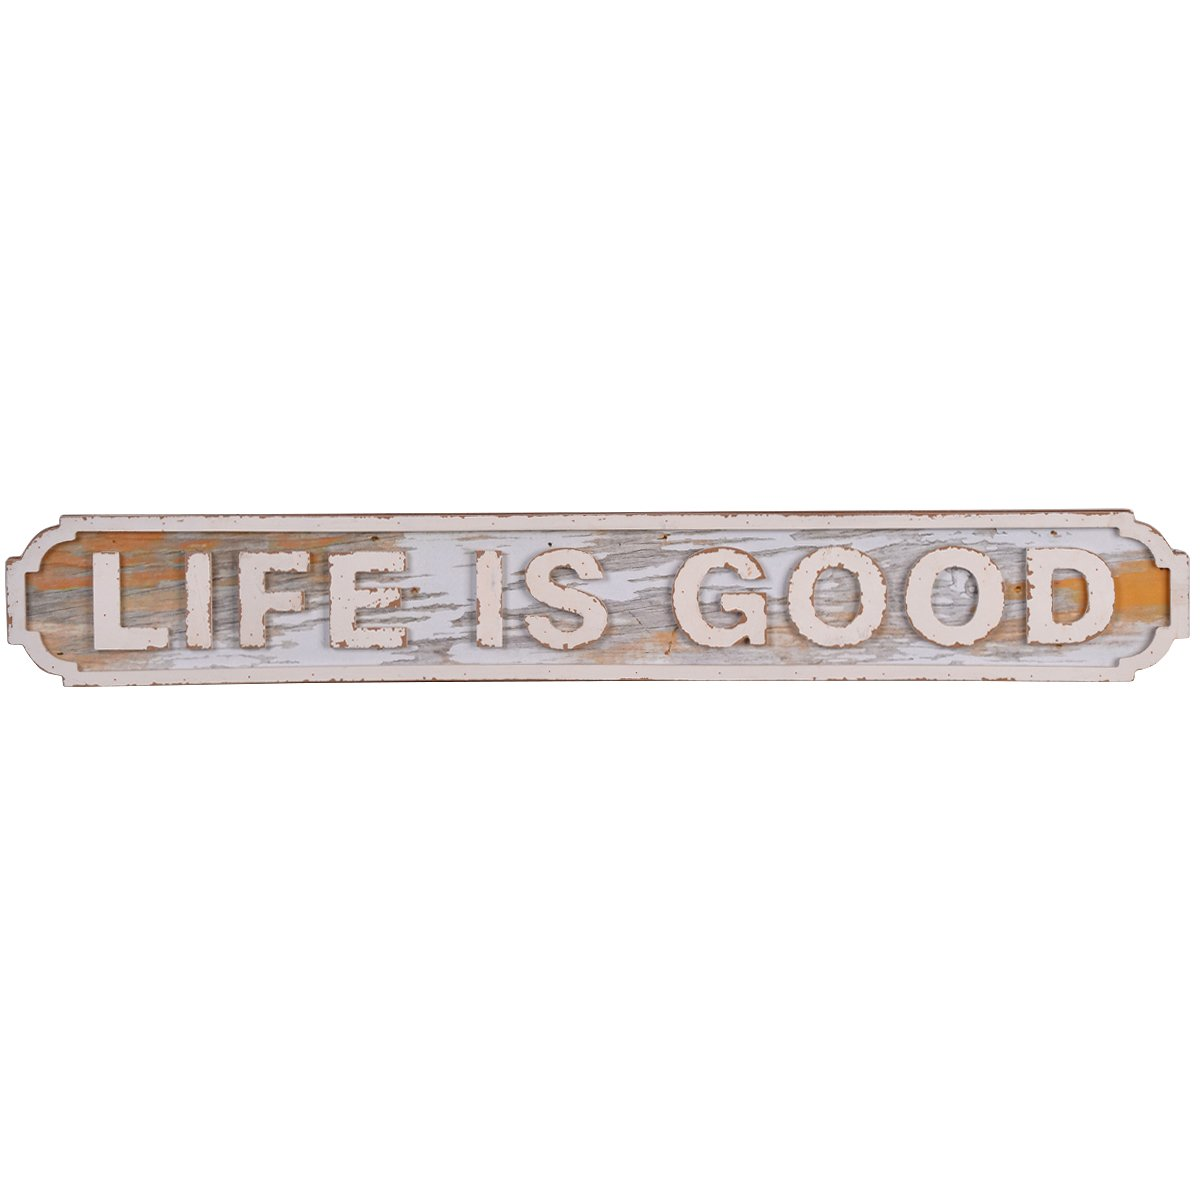 NIKKY HOME Life is Good Rustic Wooden Wall Decorative Sign 28.66 x 0.91 x 4.13 Inches, White